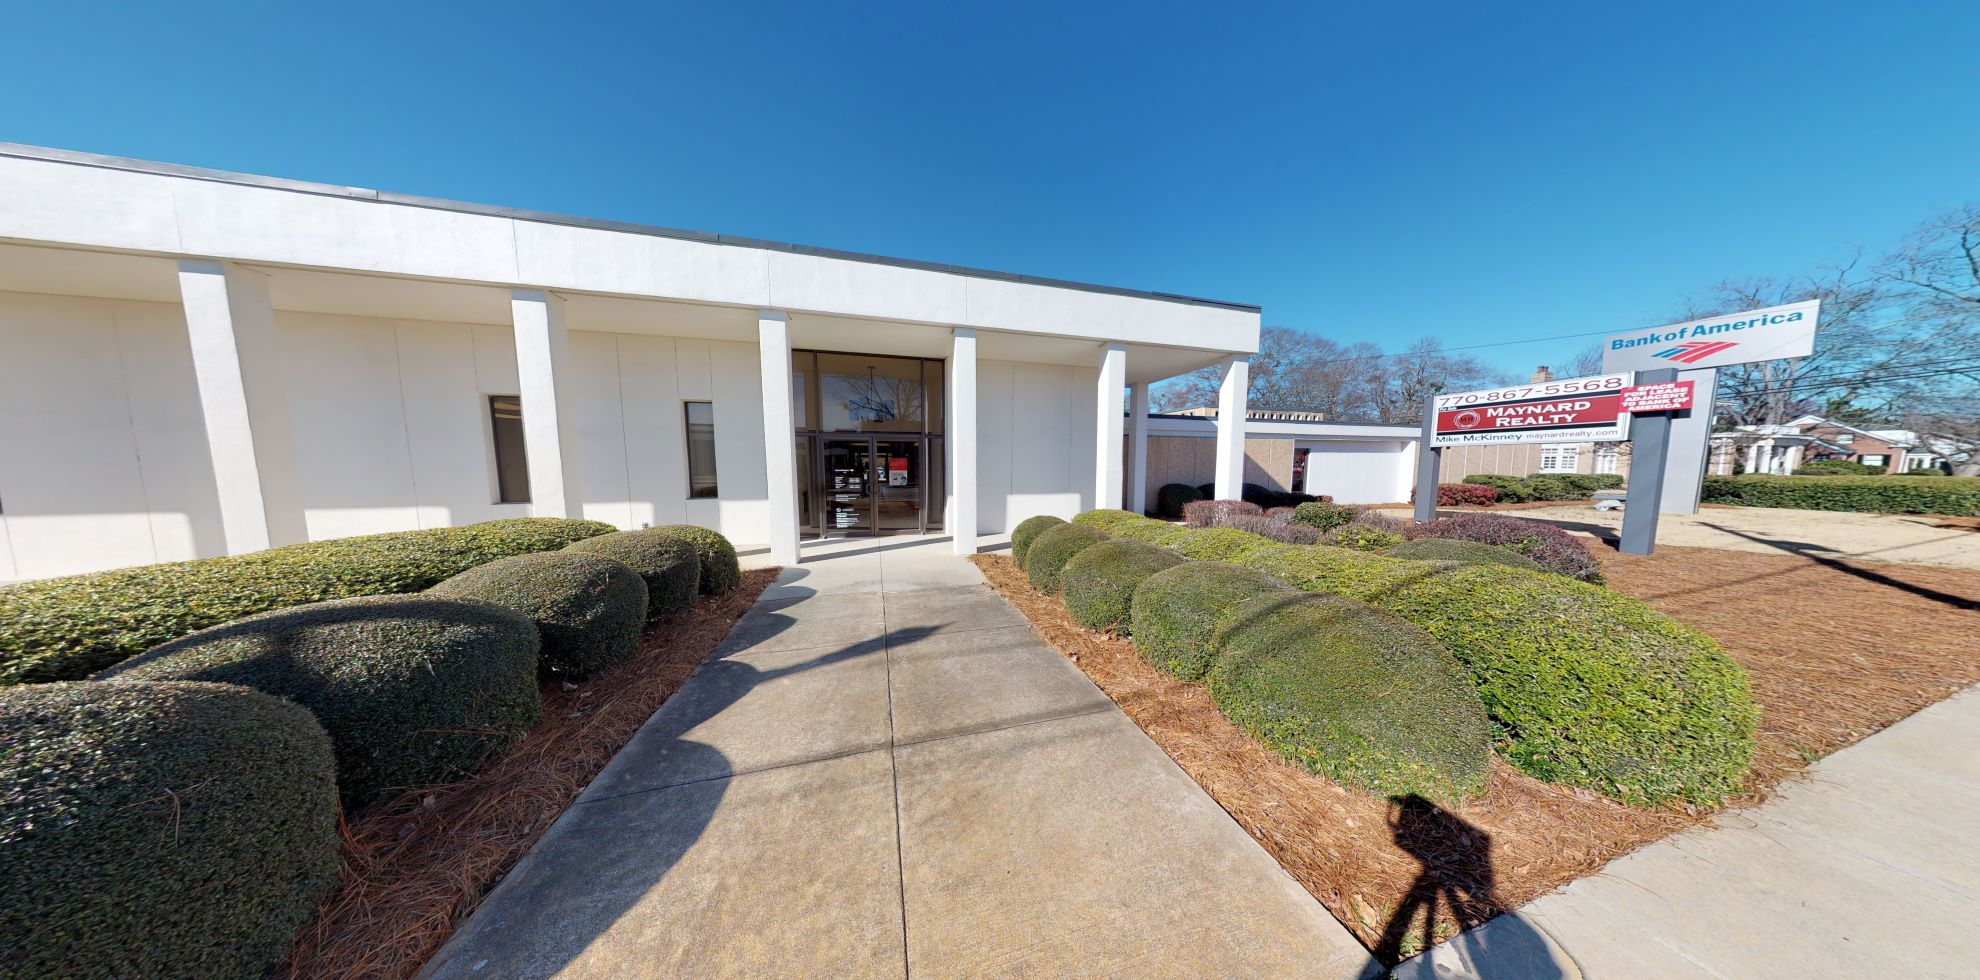 Bank of America financial center with drive-thru ATM | 102 N Broad St, Winder, GA 30680